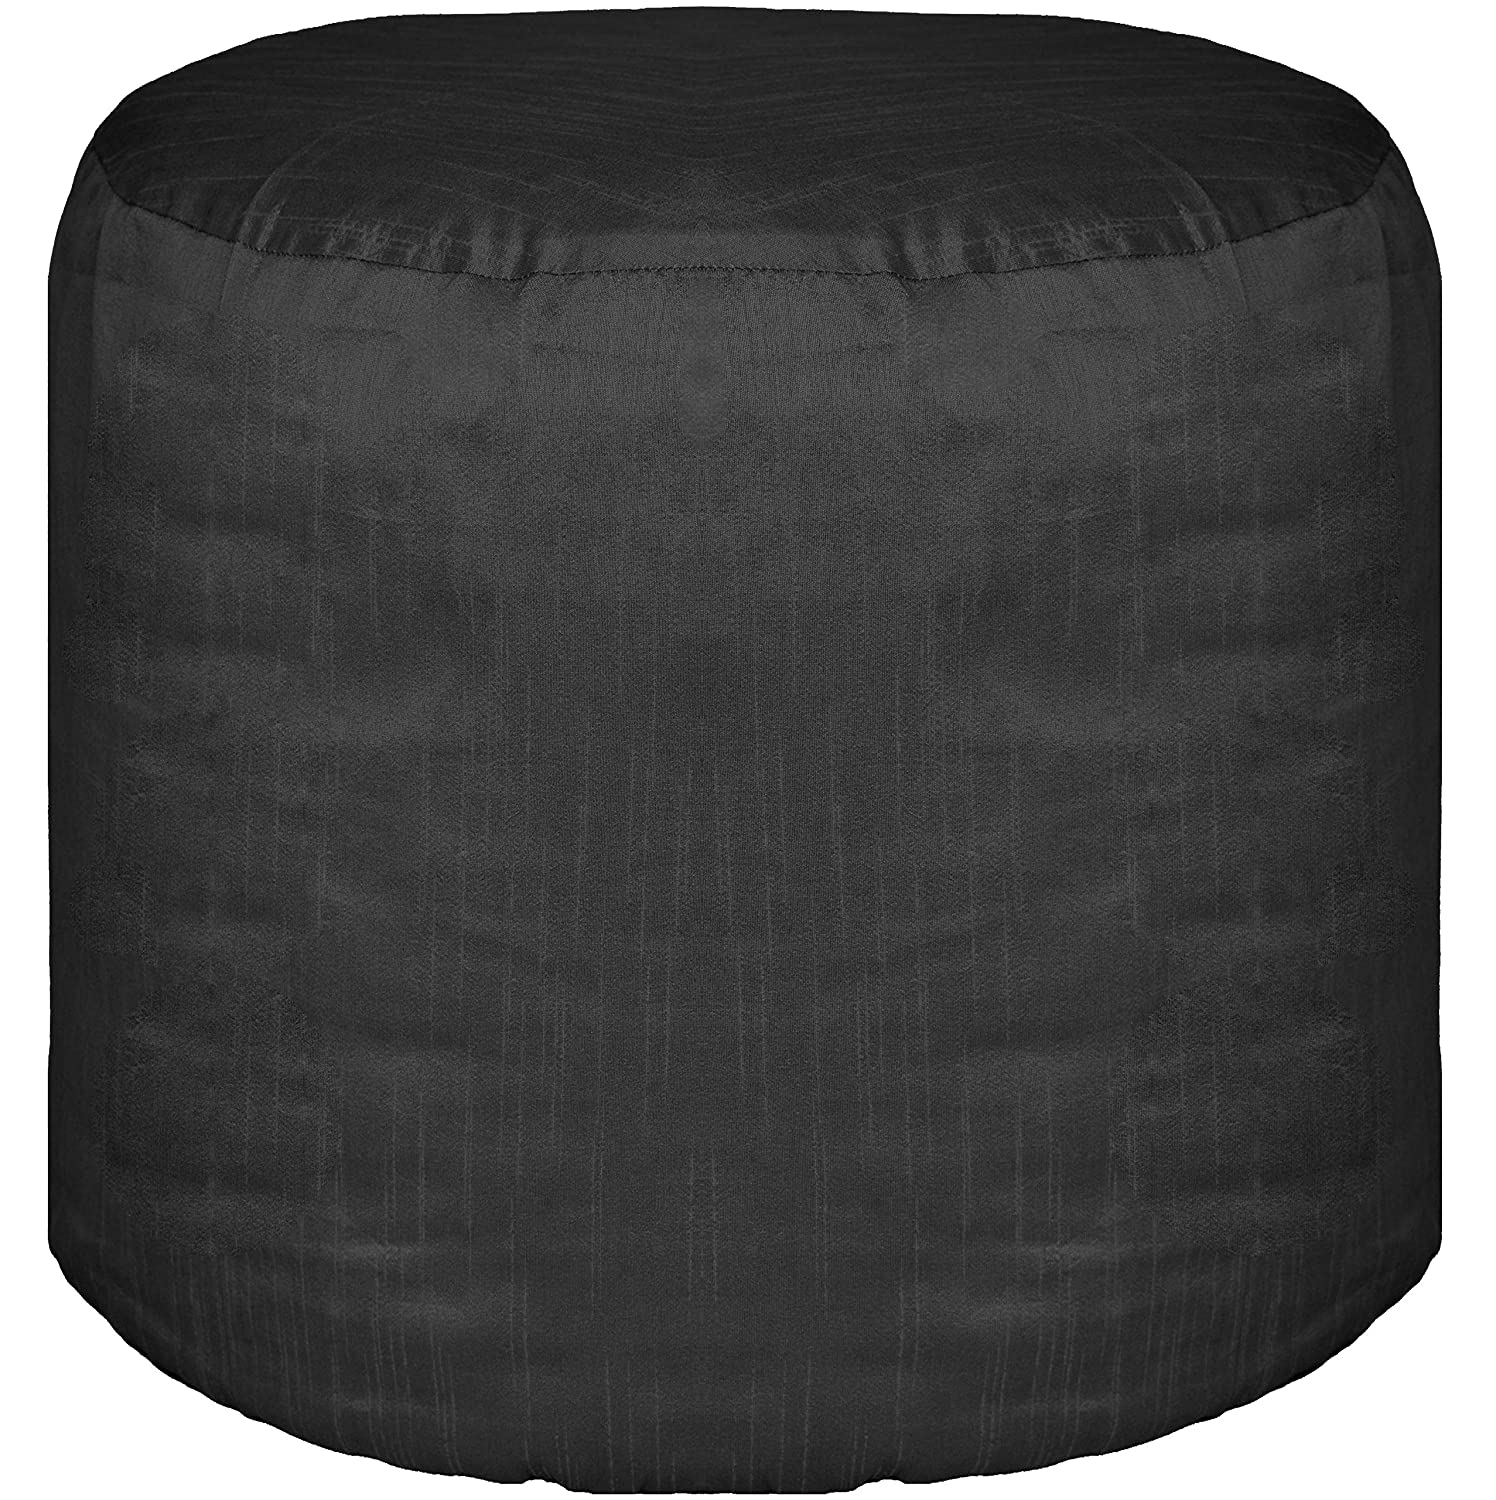 Pleasant Footstool Round Pouf Cover Ottoman Cover Polyester Black 24 Diameter X 16 Height 60 Cm Diameter X 40 Cm Height Cover Only Not Stuffed Insert Not Gmtry Best Dining Table And Chair Ideas Images Gmtryco